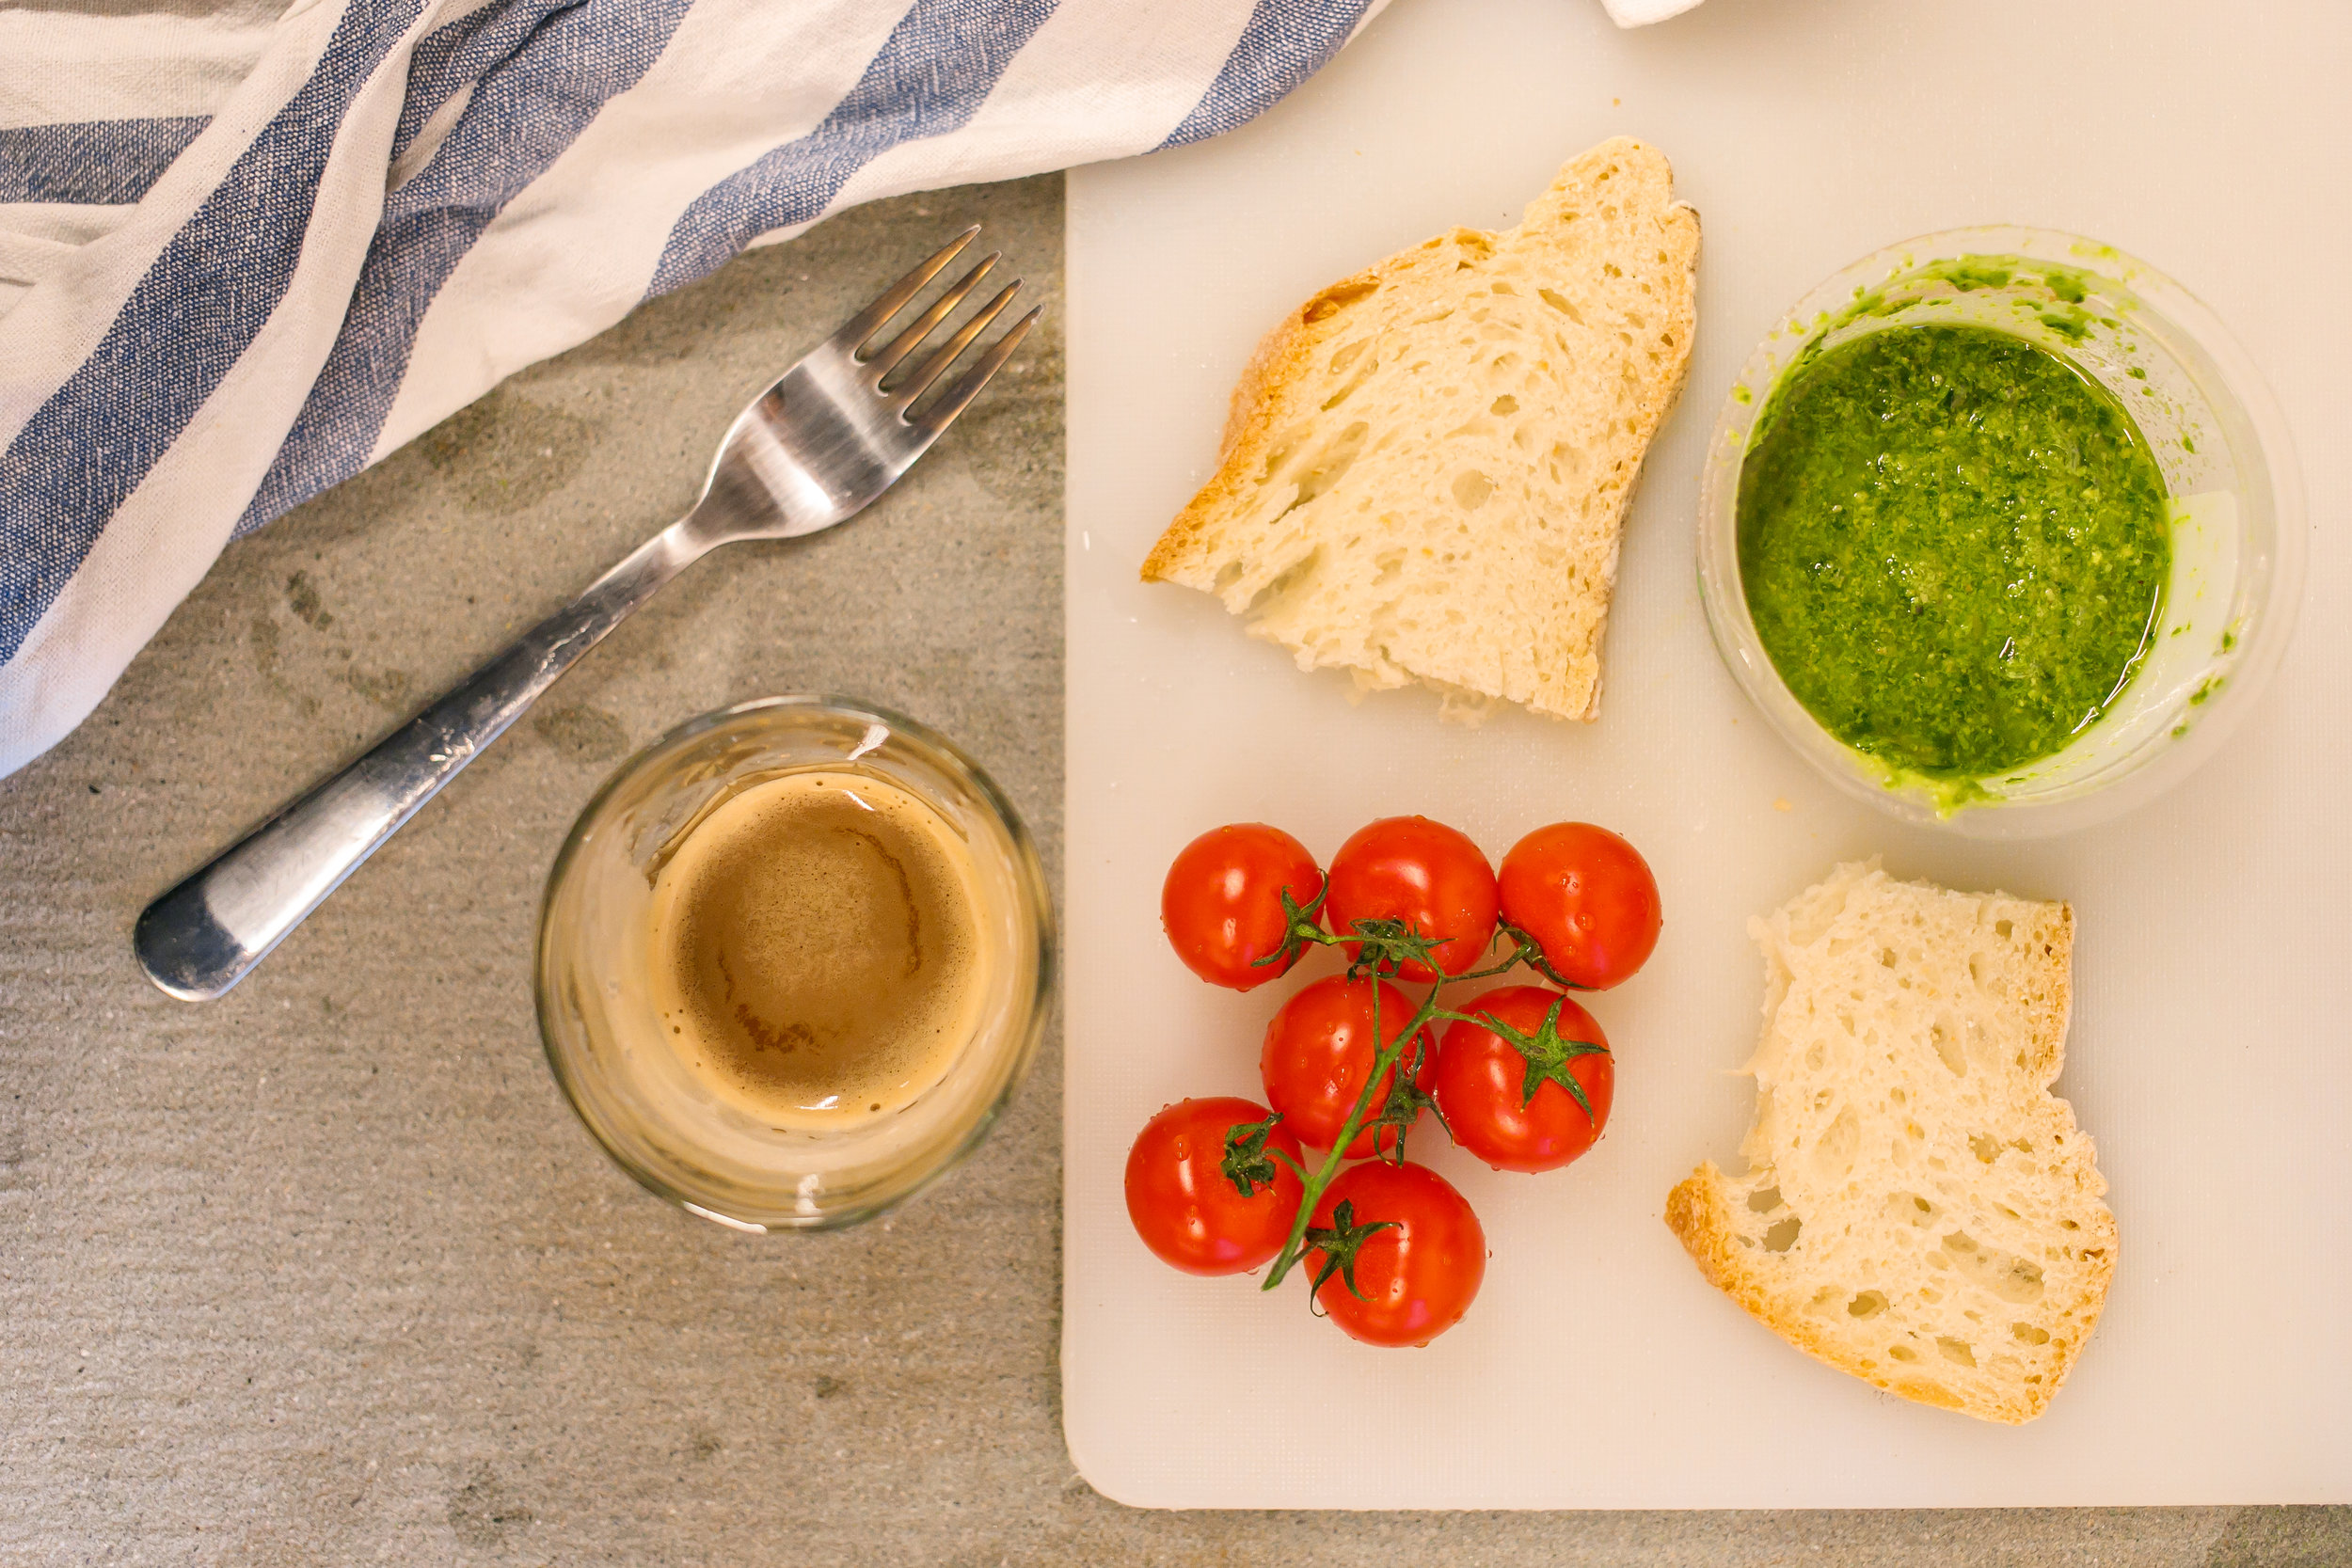 Espresso, bread, tomatoes, and pesto! I did so much cooking that week.